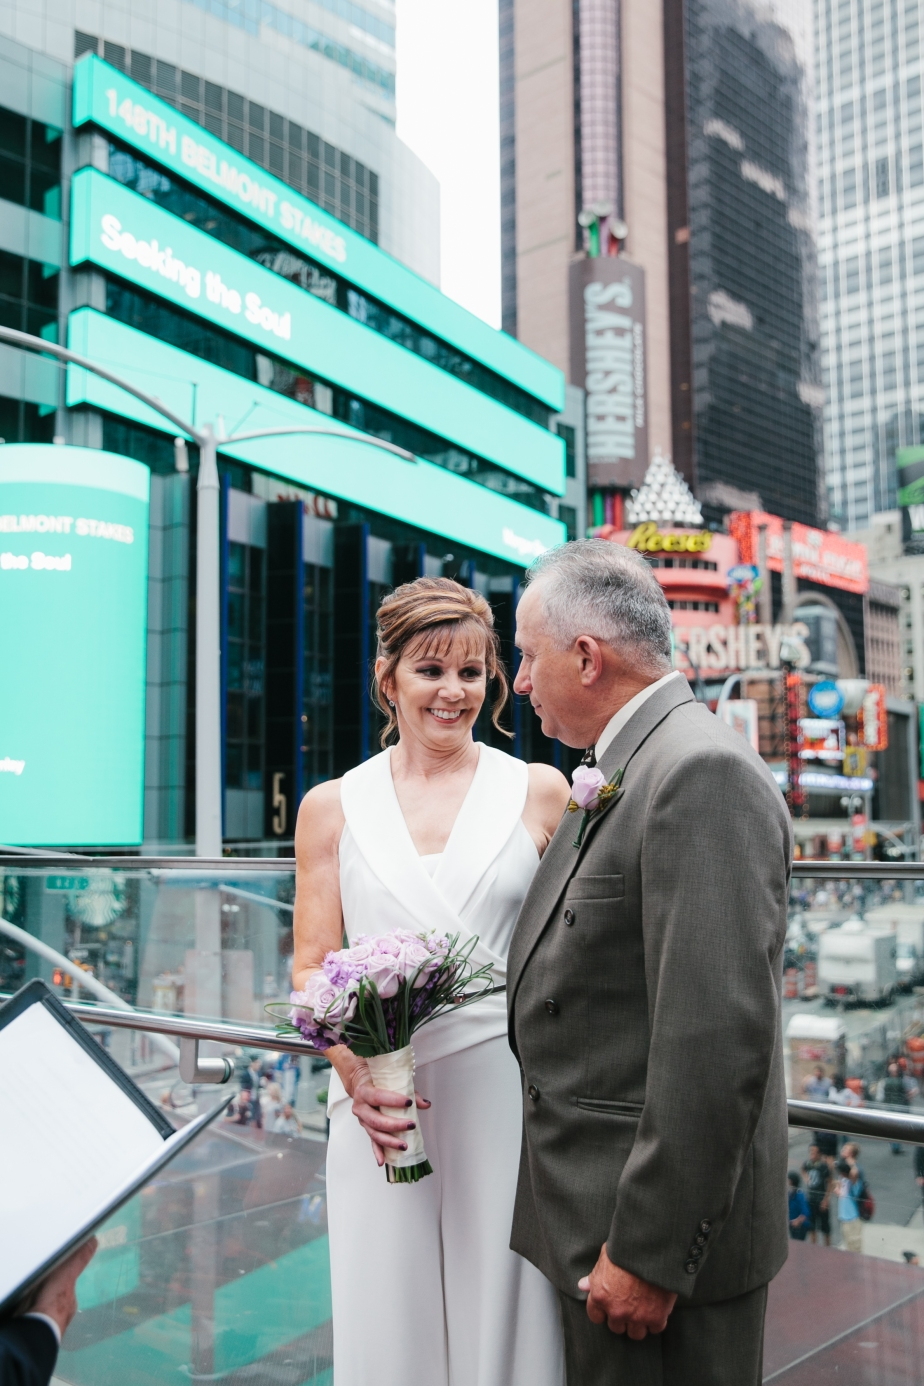 times_square_wedding_EB-12